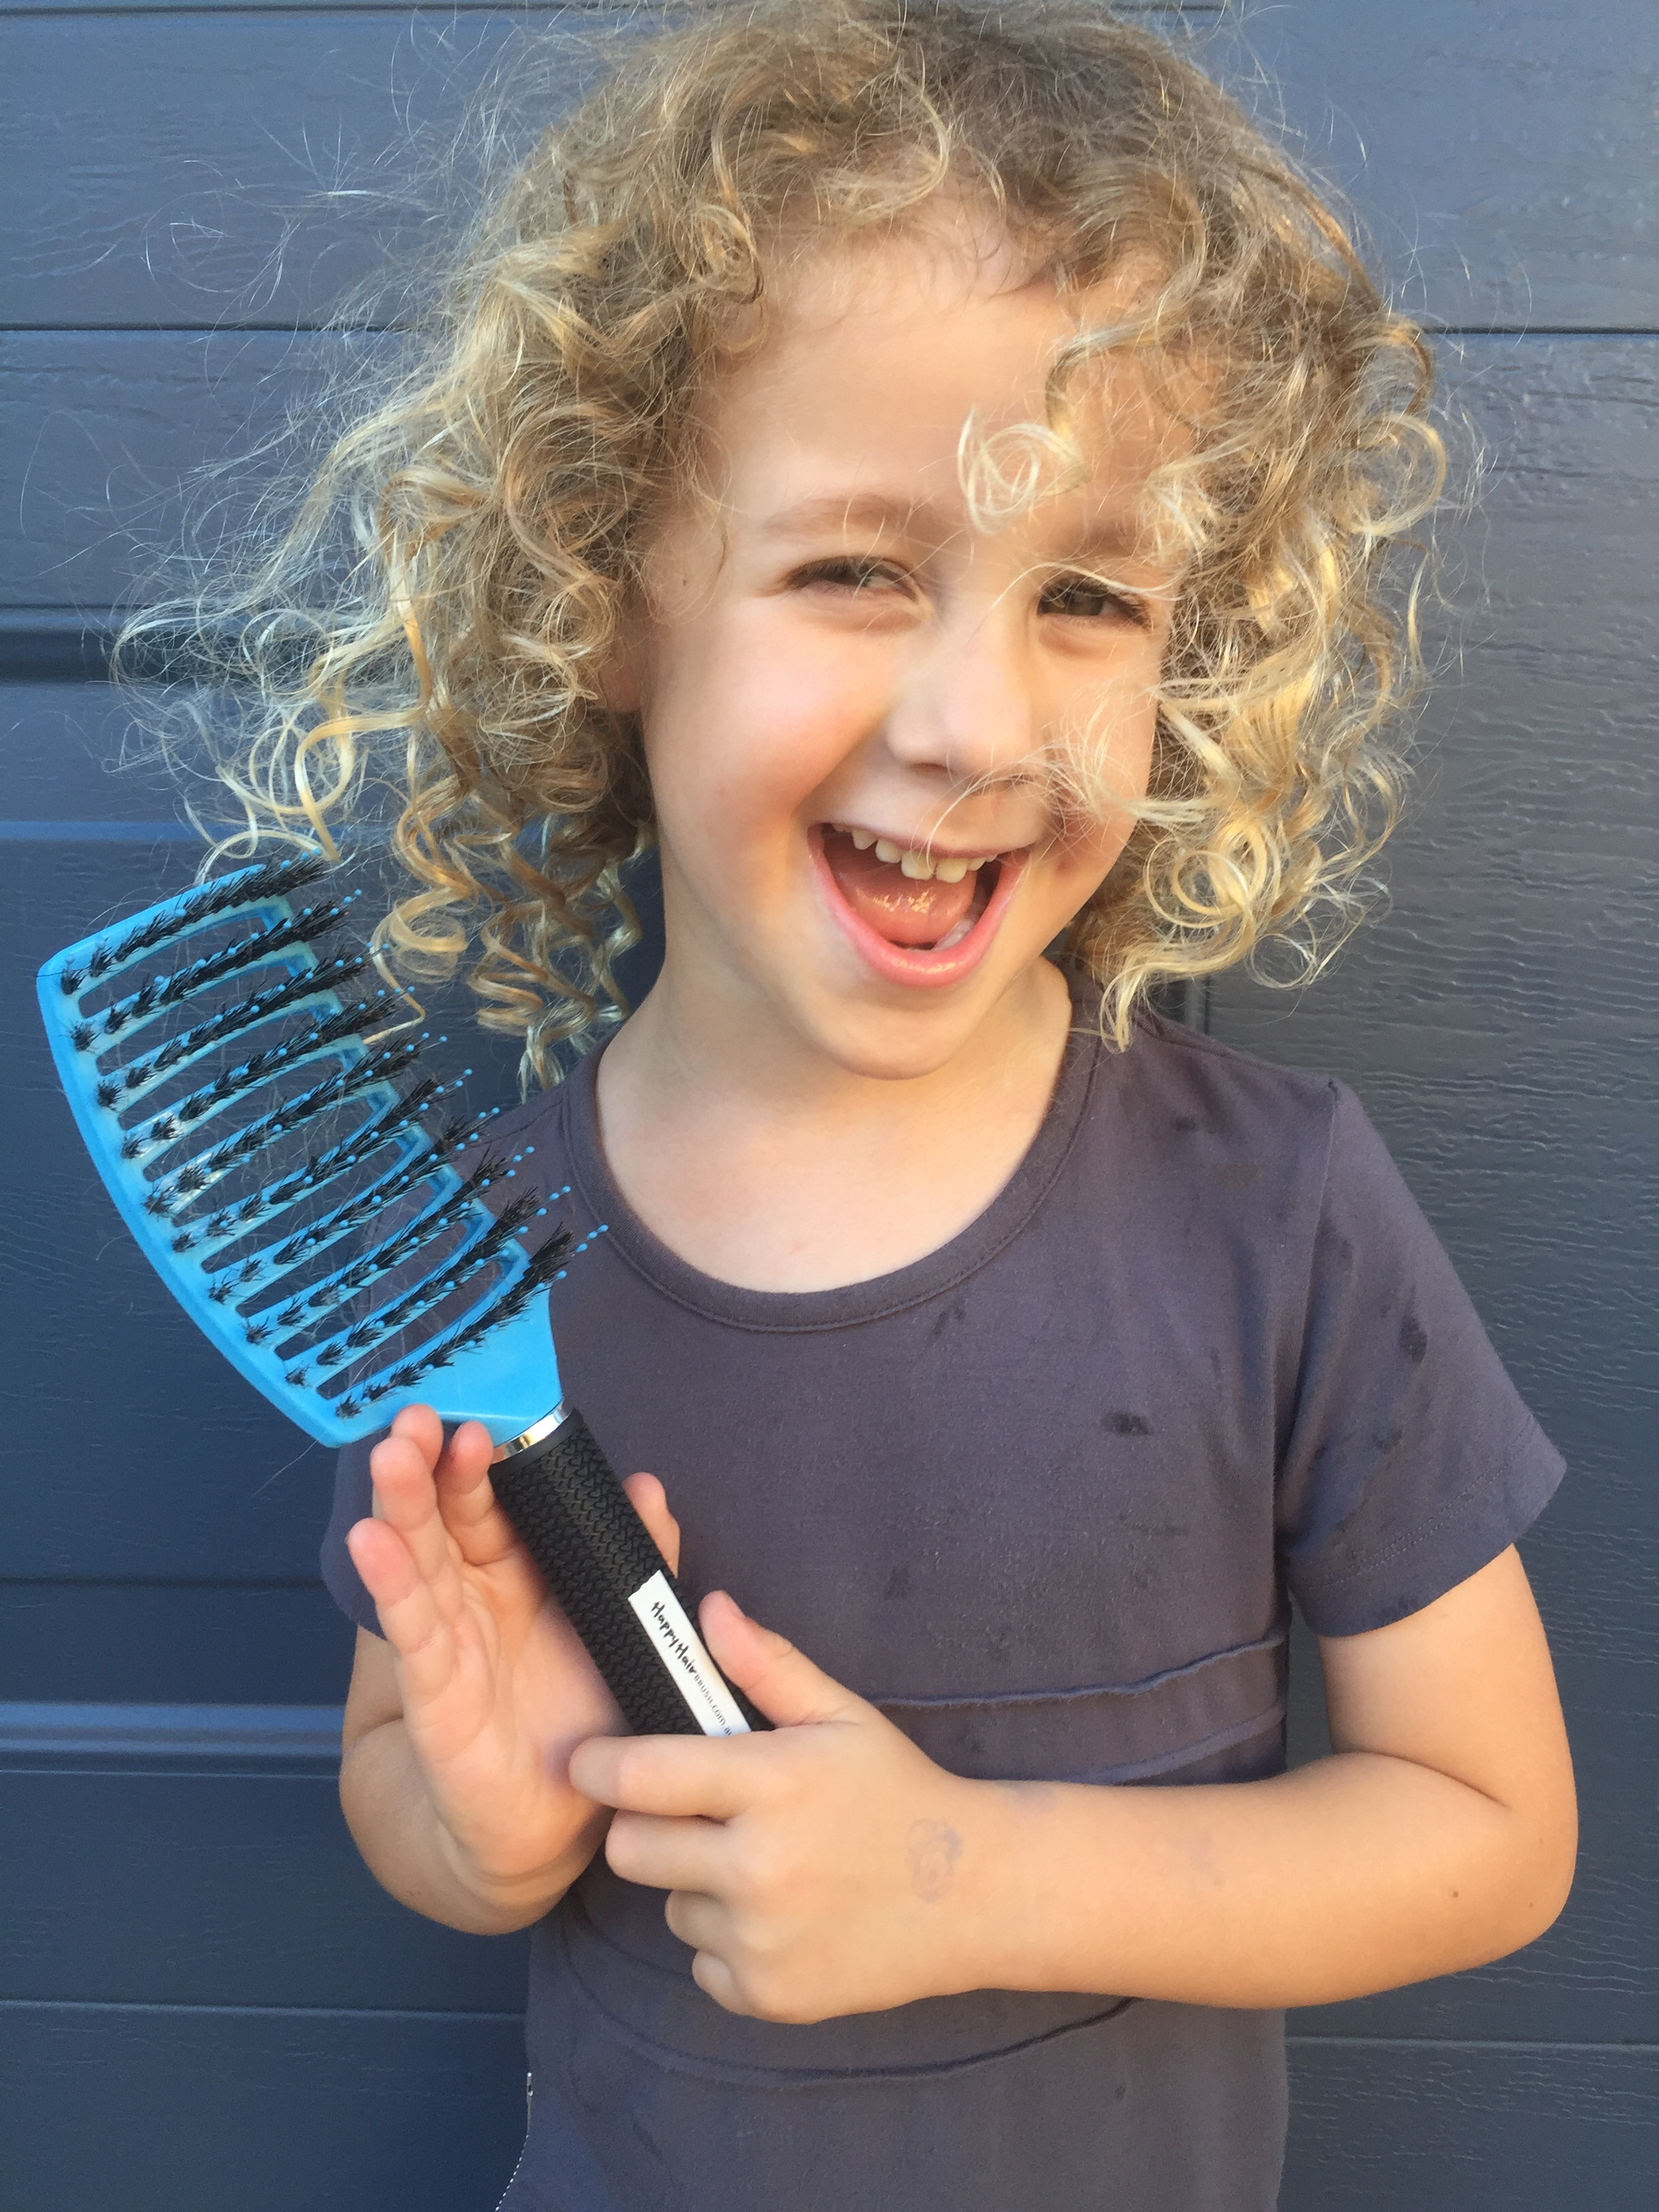 Boy and hairbrush